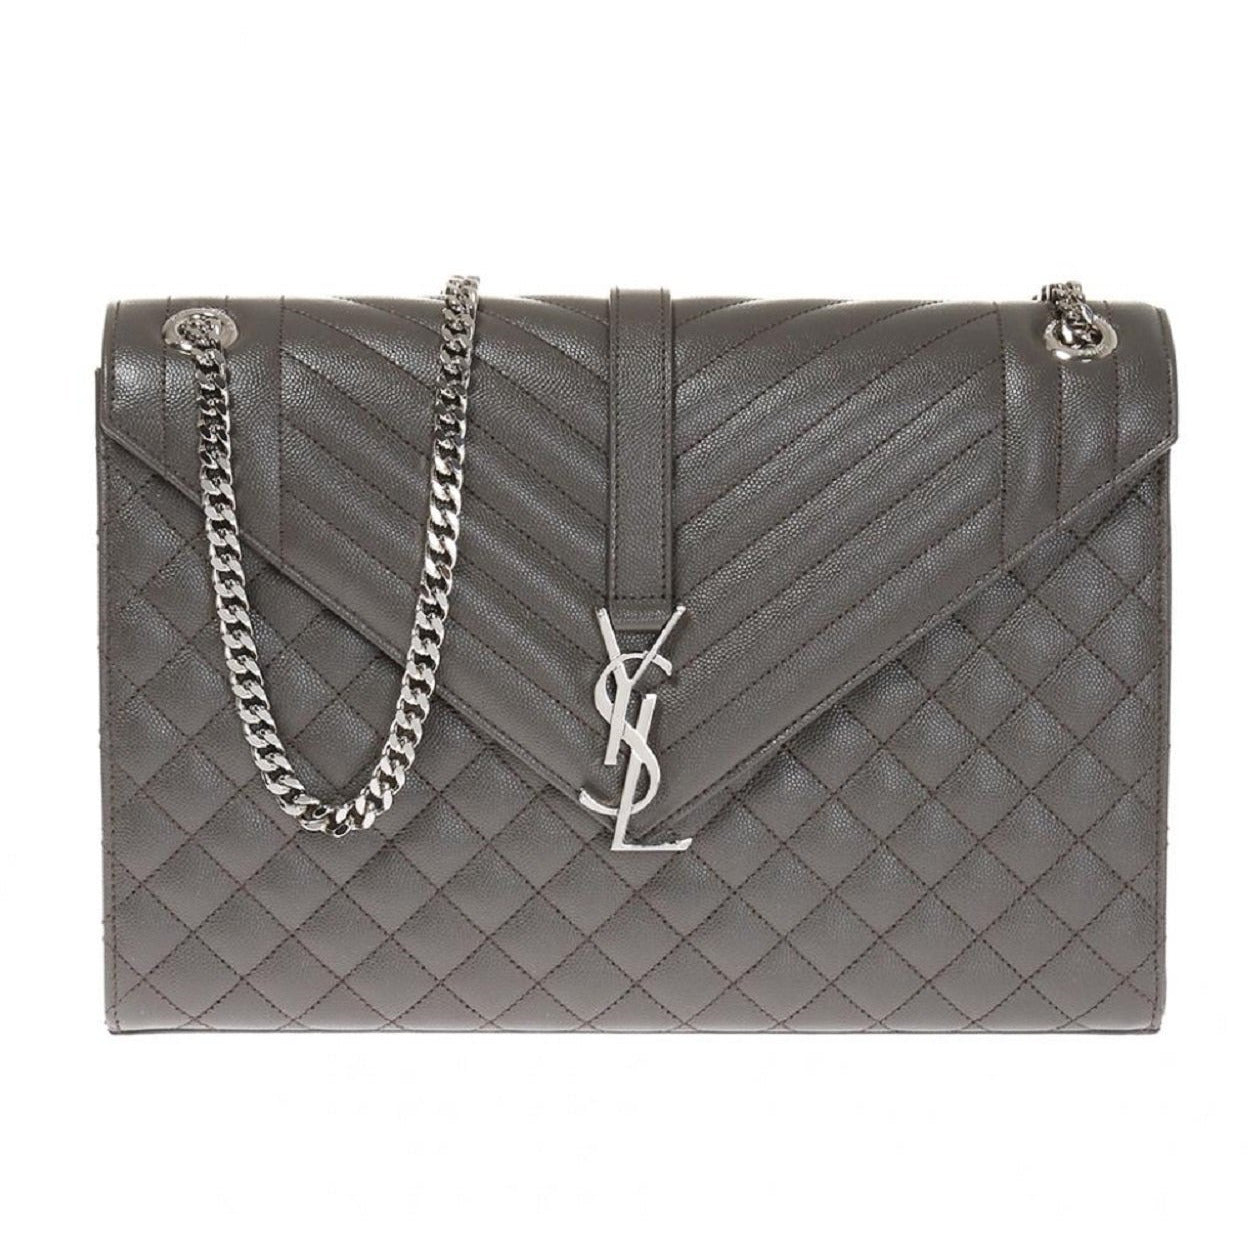 Saint Laurent YSL Gray Large Envelope Classic College Monogram Handbag 396910